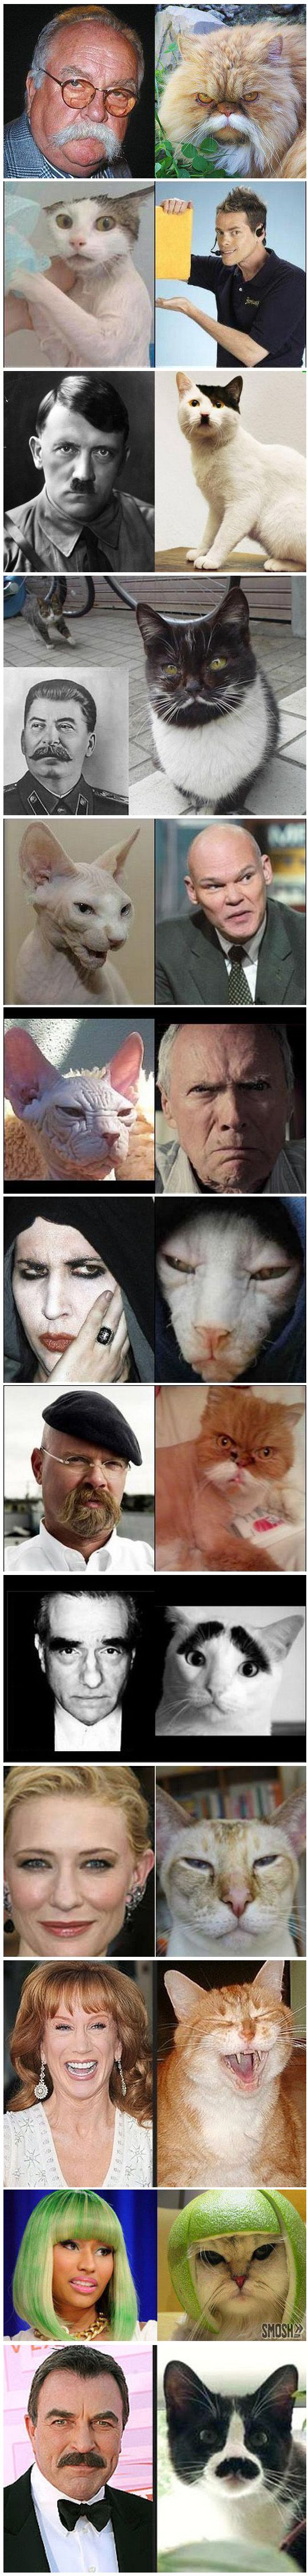 13 Cats That Look Like Celebrities...haha!!